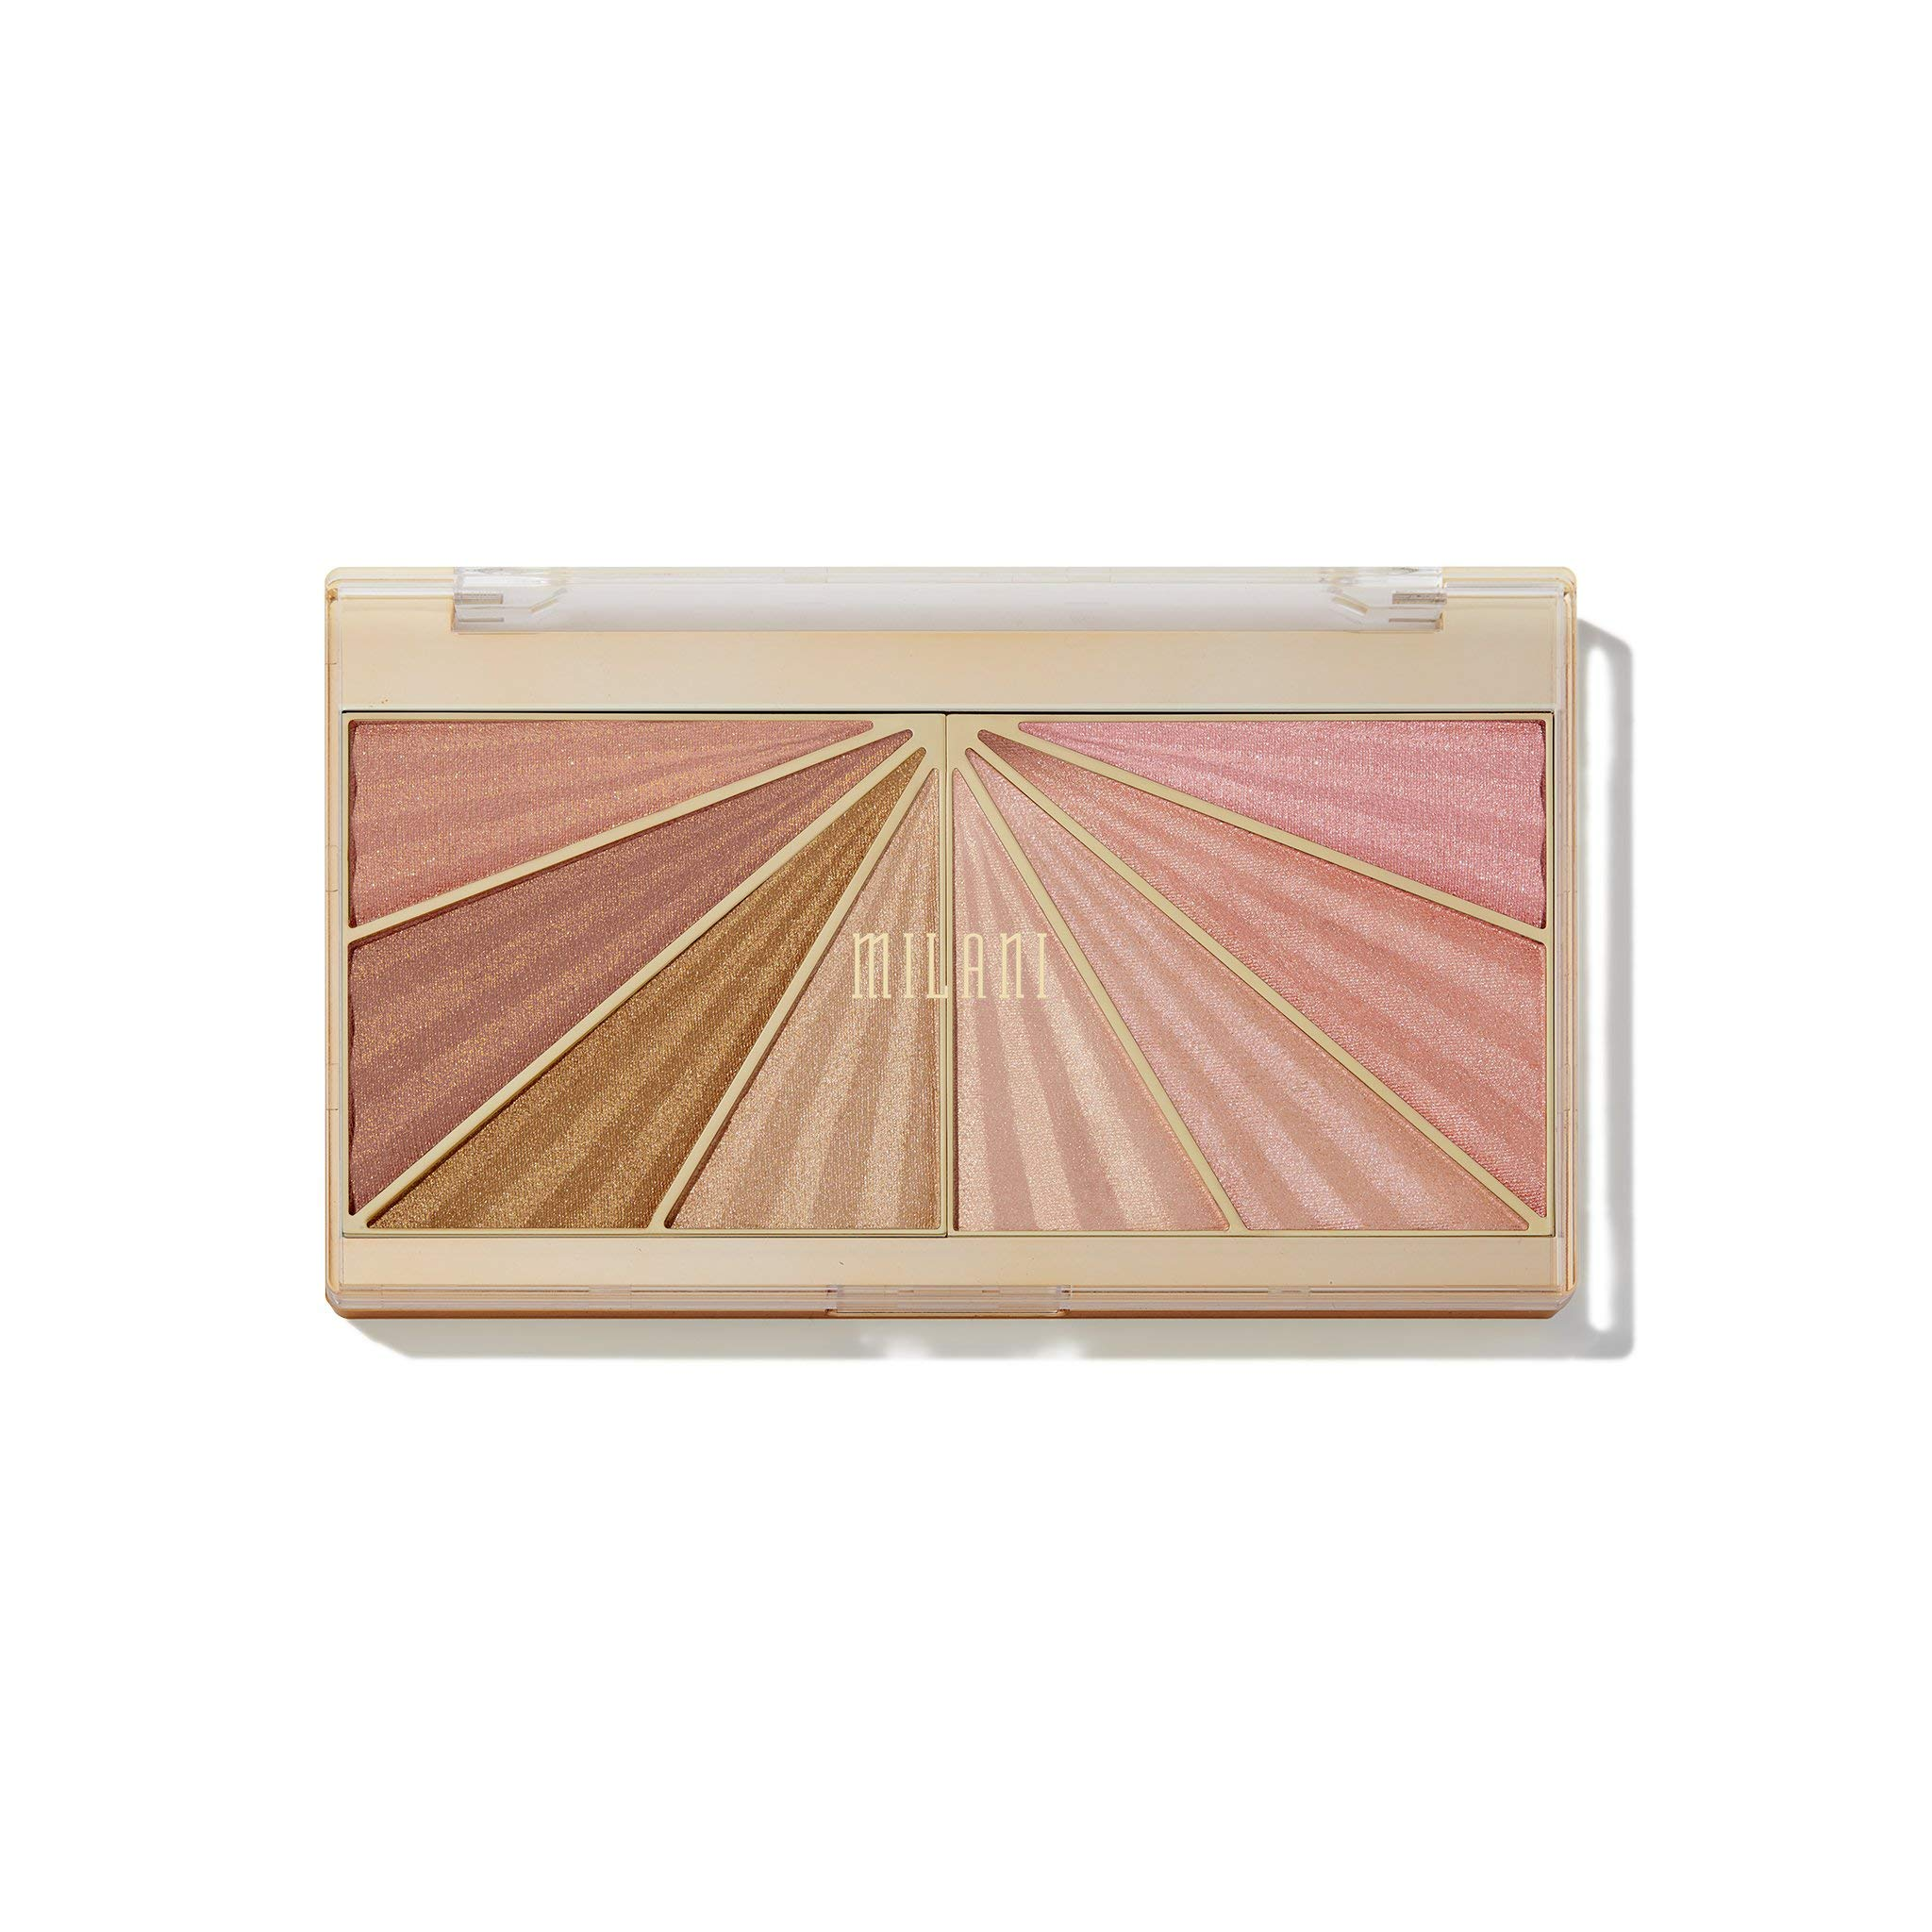 Milani Luminoso Glow Shimmering Face Palette (0.37 Ounce) Cruelty-Free Highlighter Palette - Shape, Contour & Highlight Face with 8 Shimmer Shades